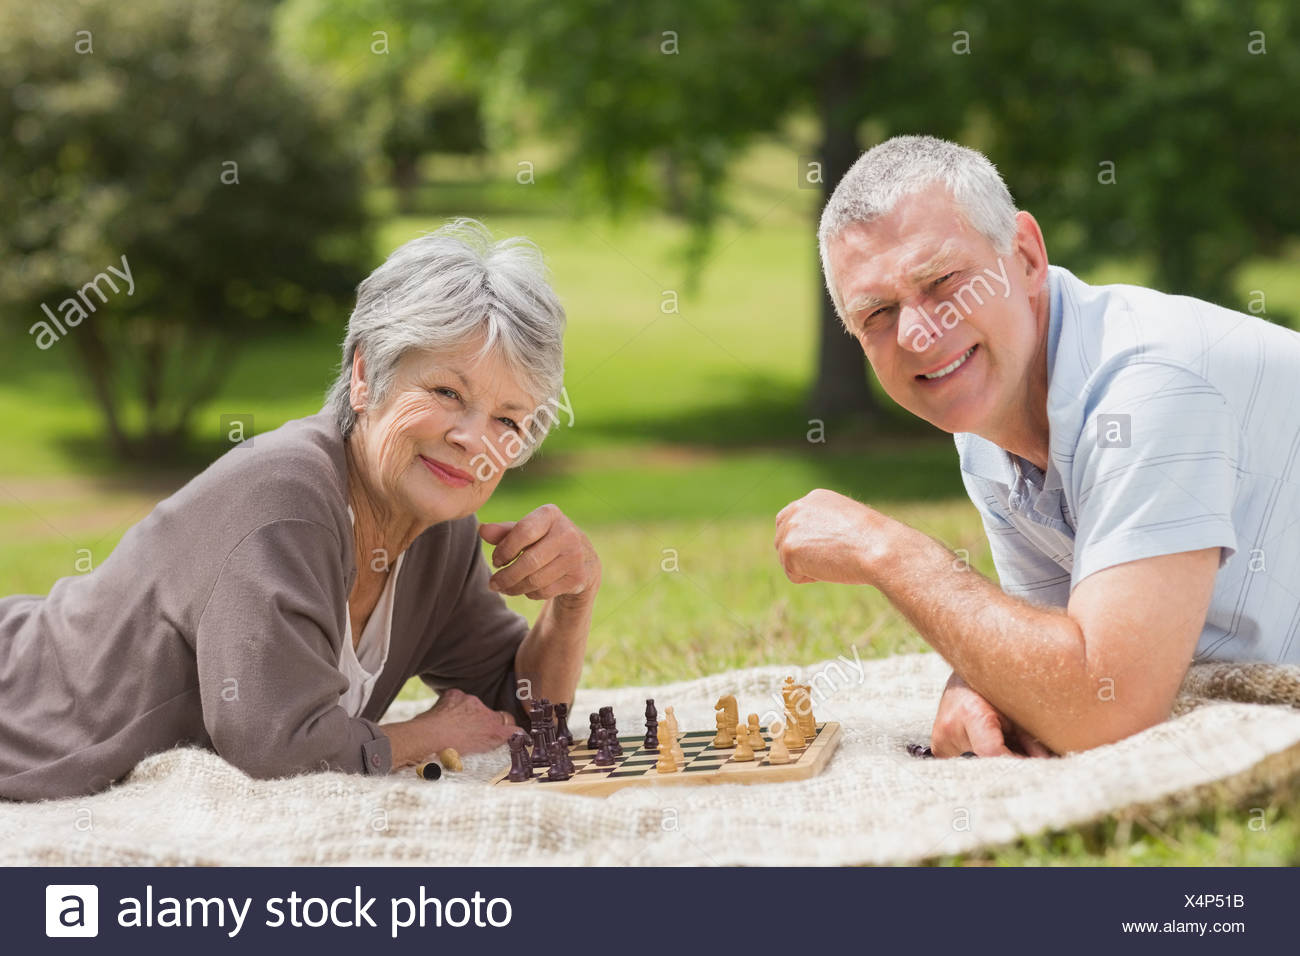 Happy senior couple playing chess at park - Stock Image